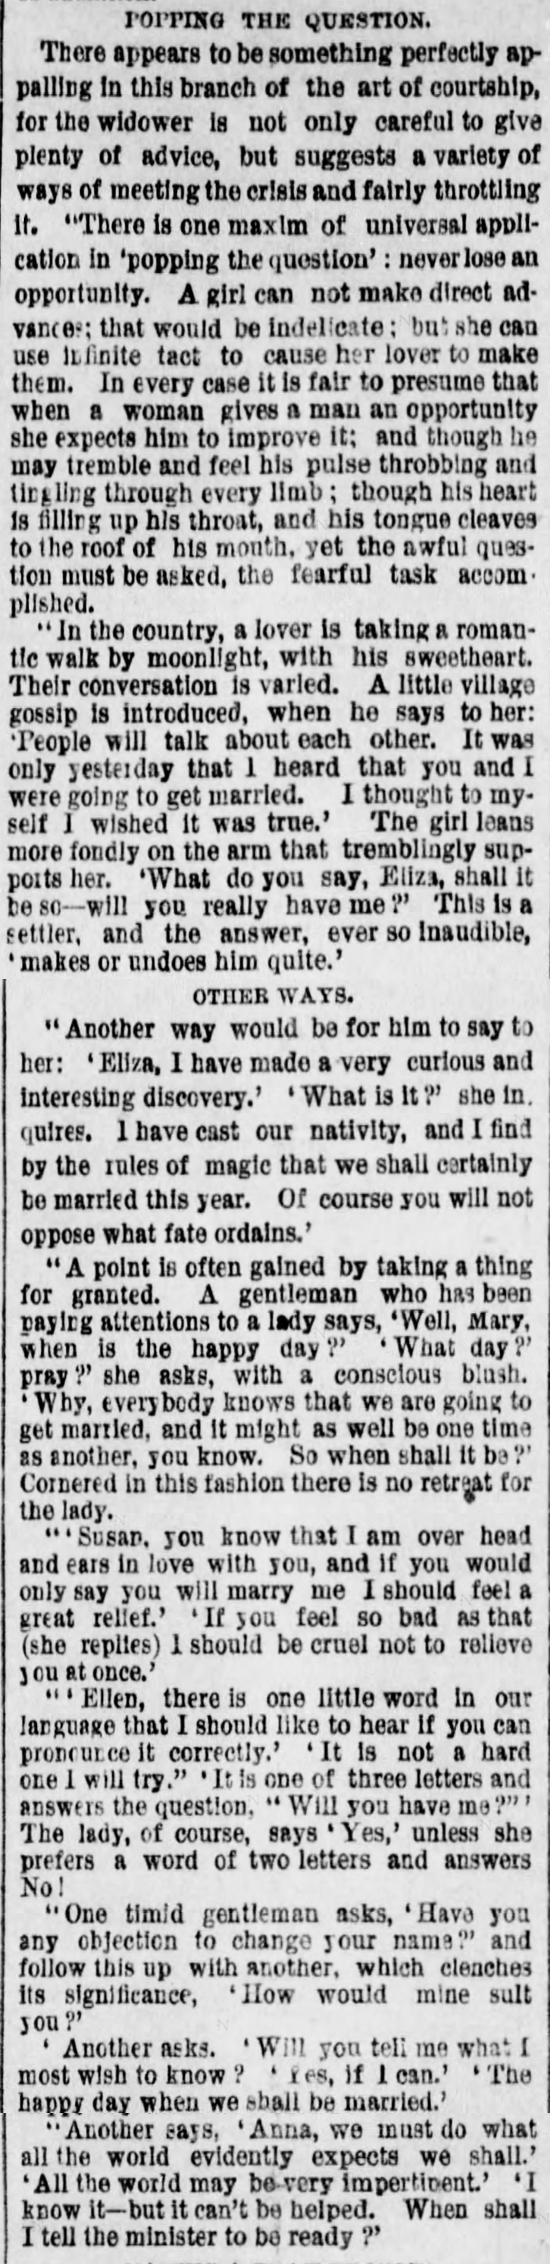 Kristin Holt | The Art of Courtship, Part 11: Popping the Question, from The Des Moines Register of Des Moines, IA on February 20, 1887.